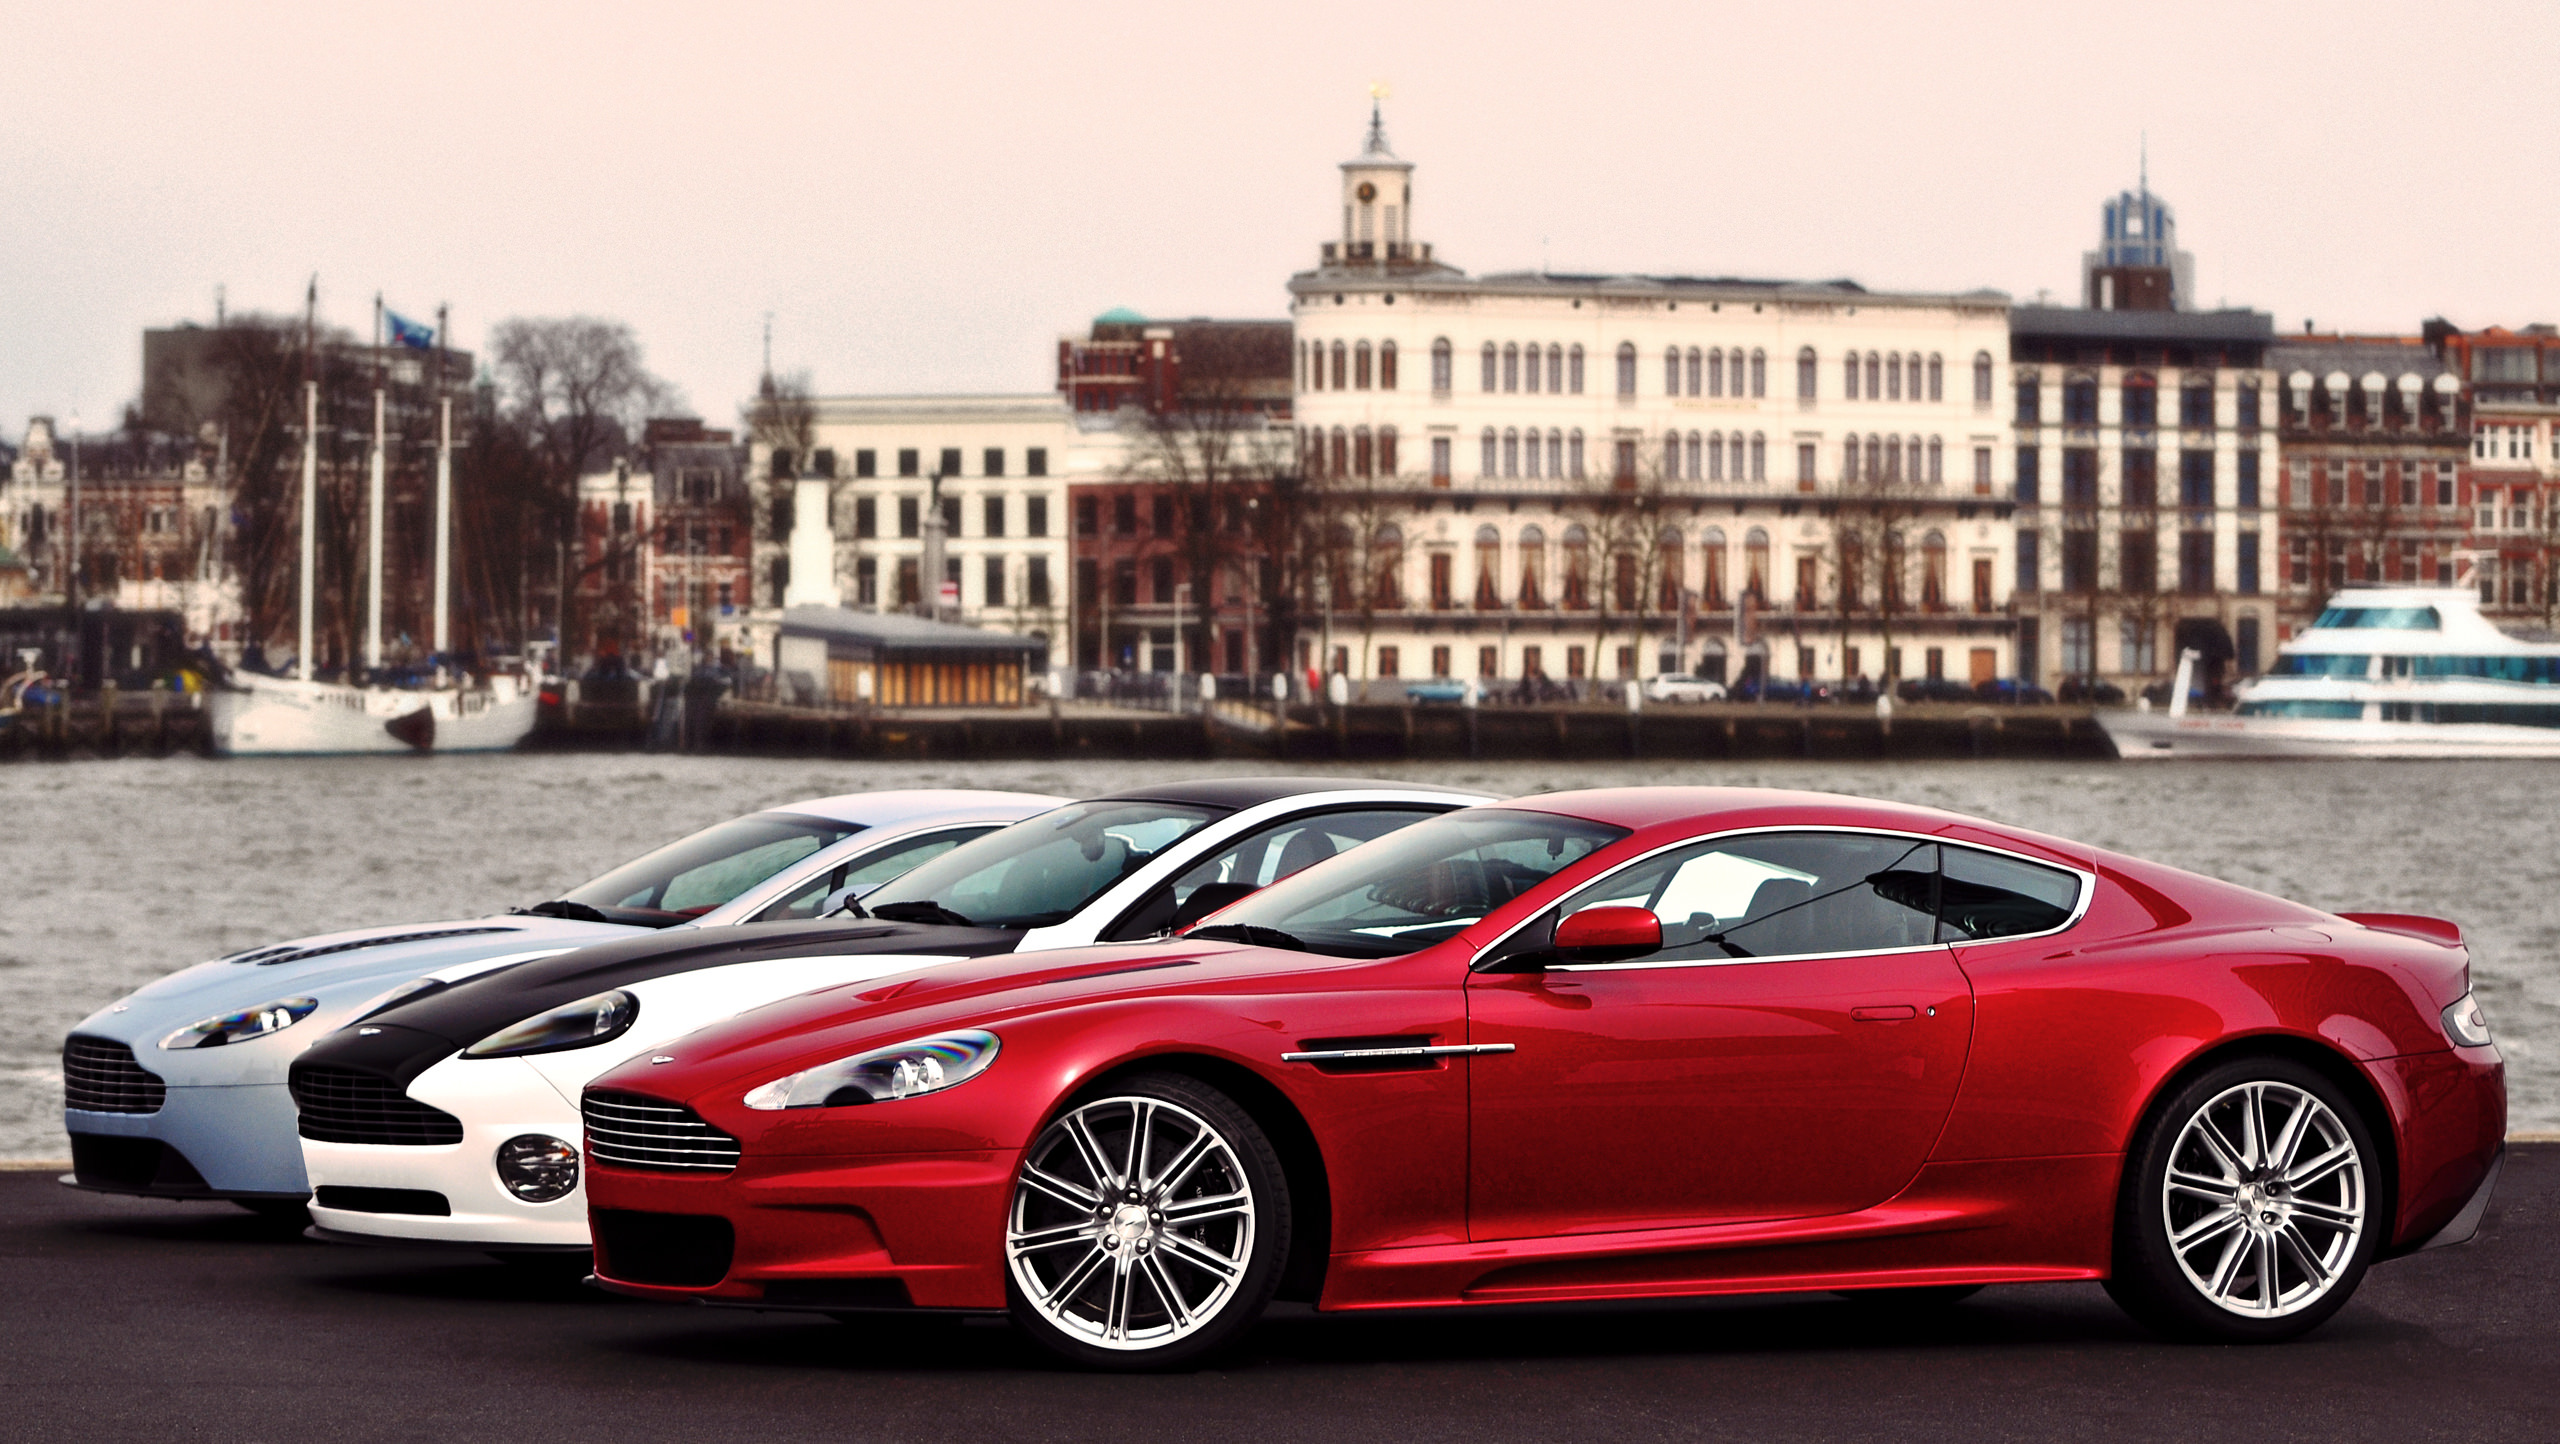 Aston Martin Vehicles Background